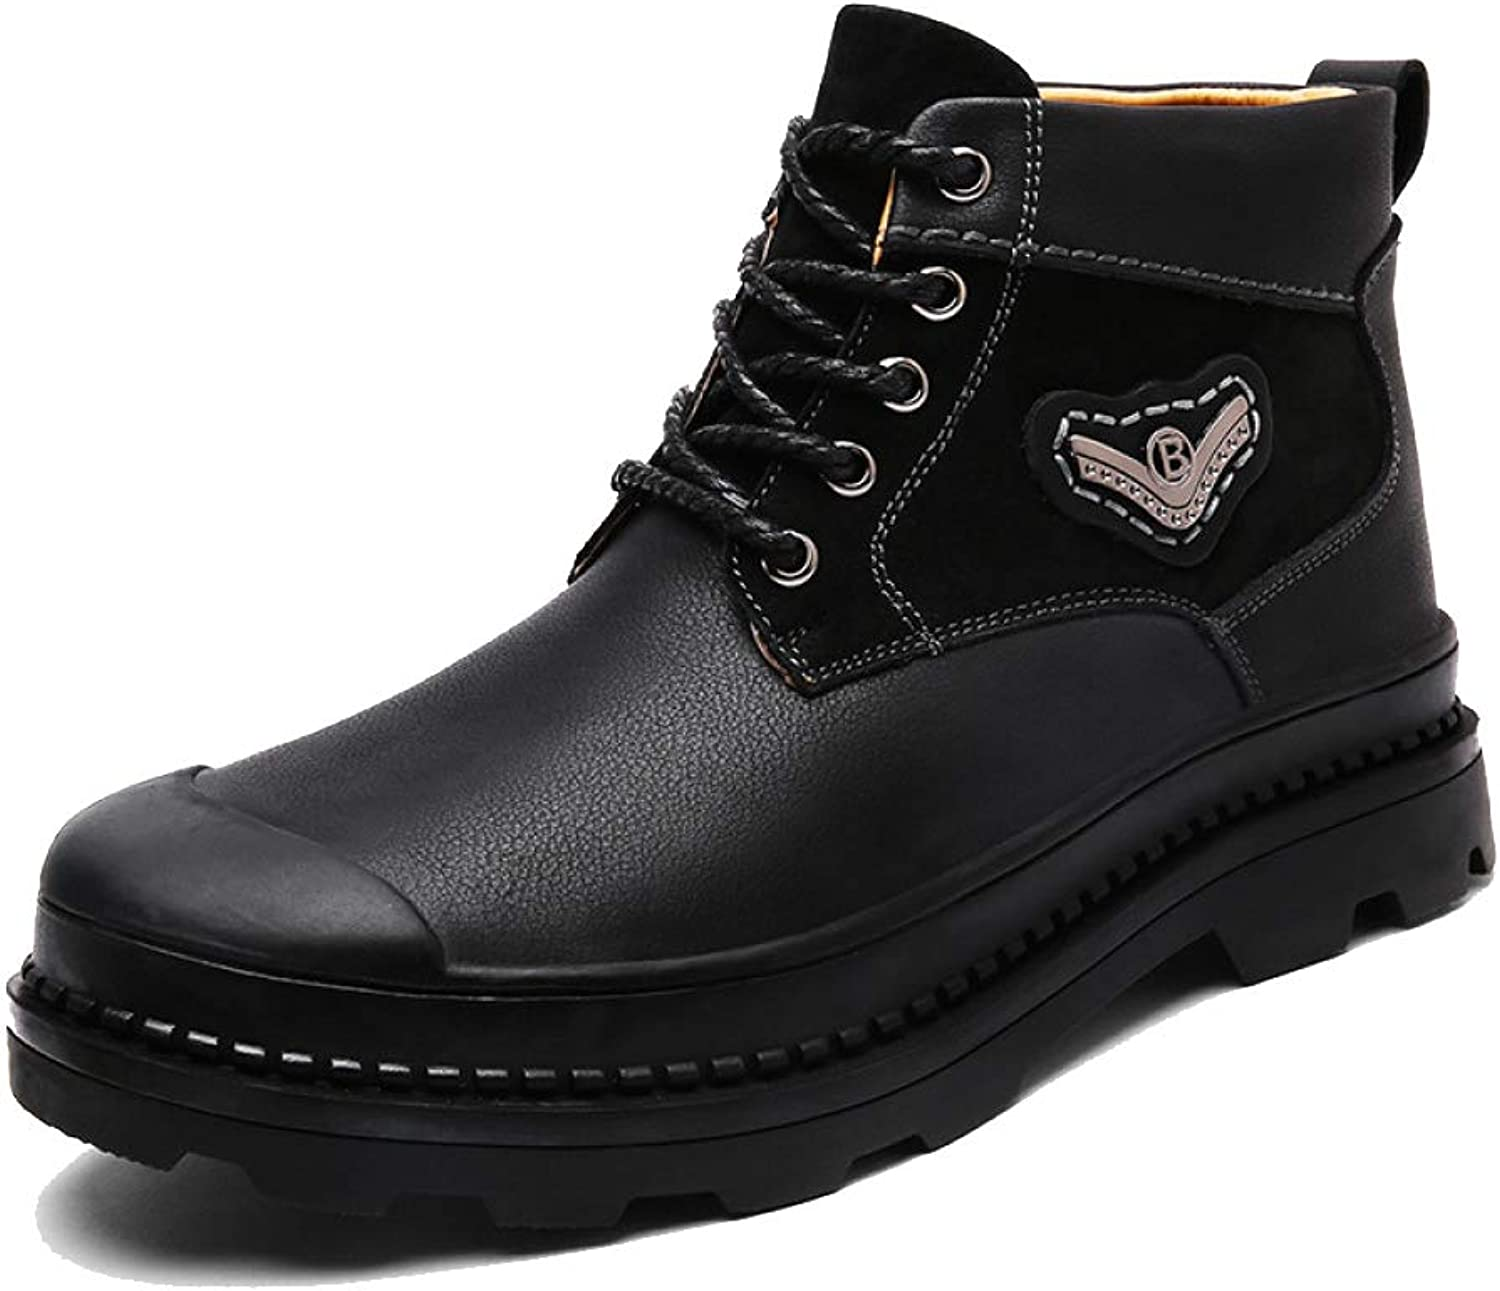 DSFGHE Boots Mens Leather Martin Boots Plus Velvet Rubber Ankle Chukka Boots Fighting Work Snow Boots Lace-up Boots